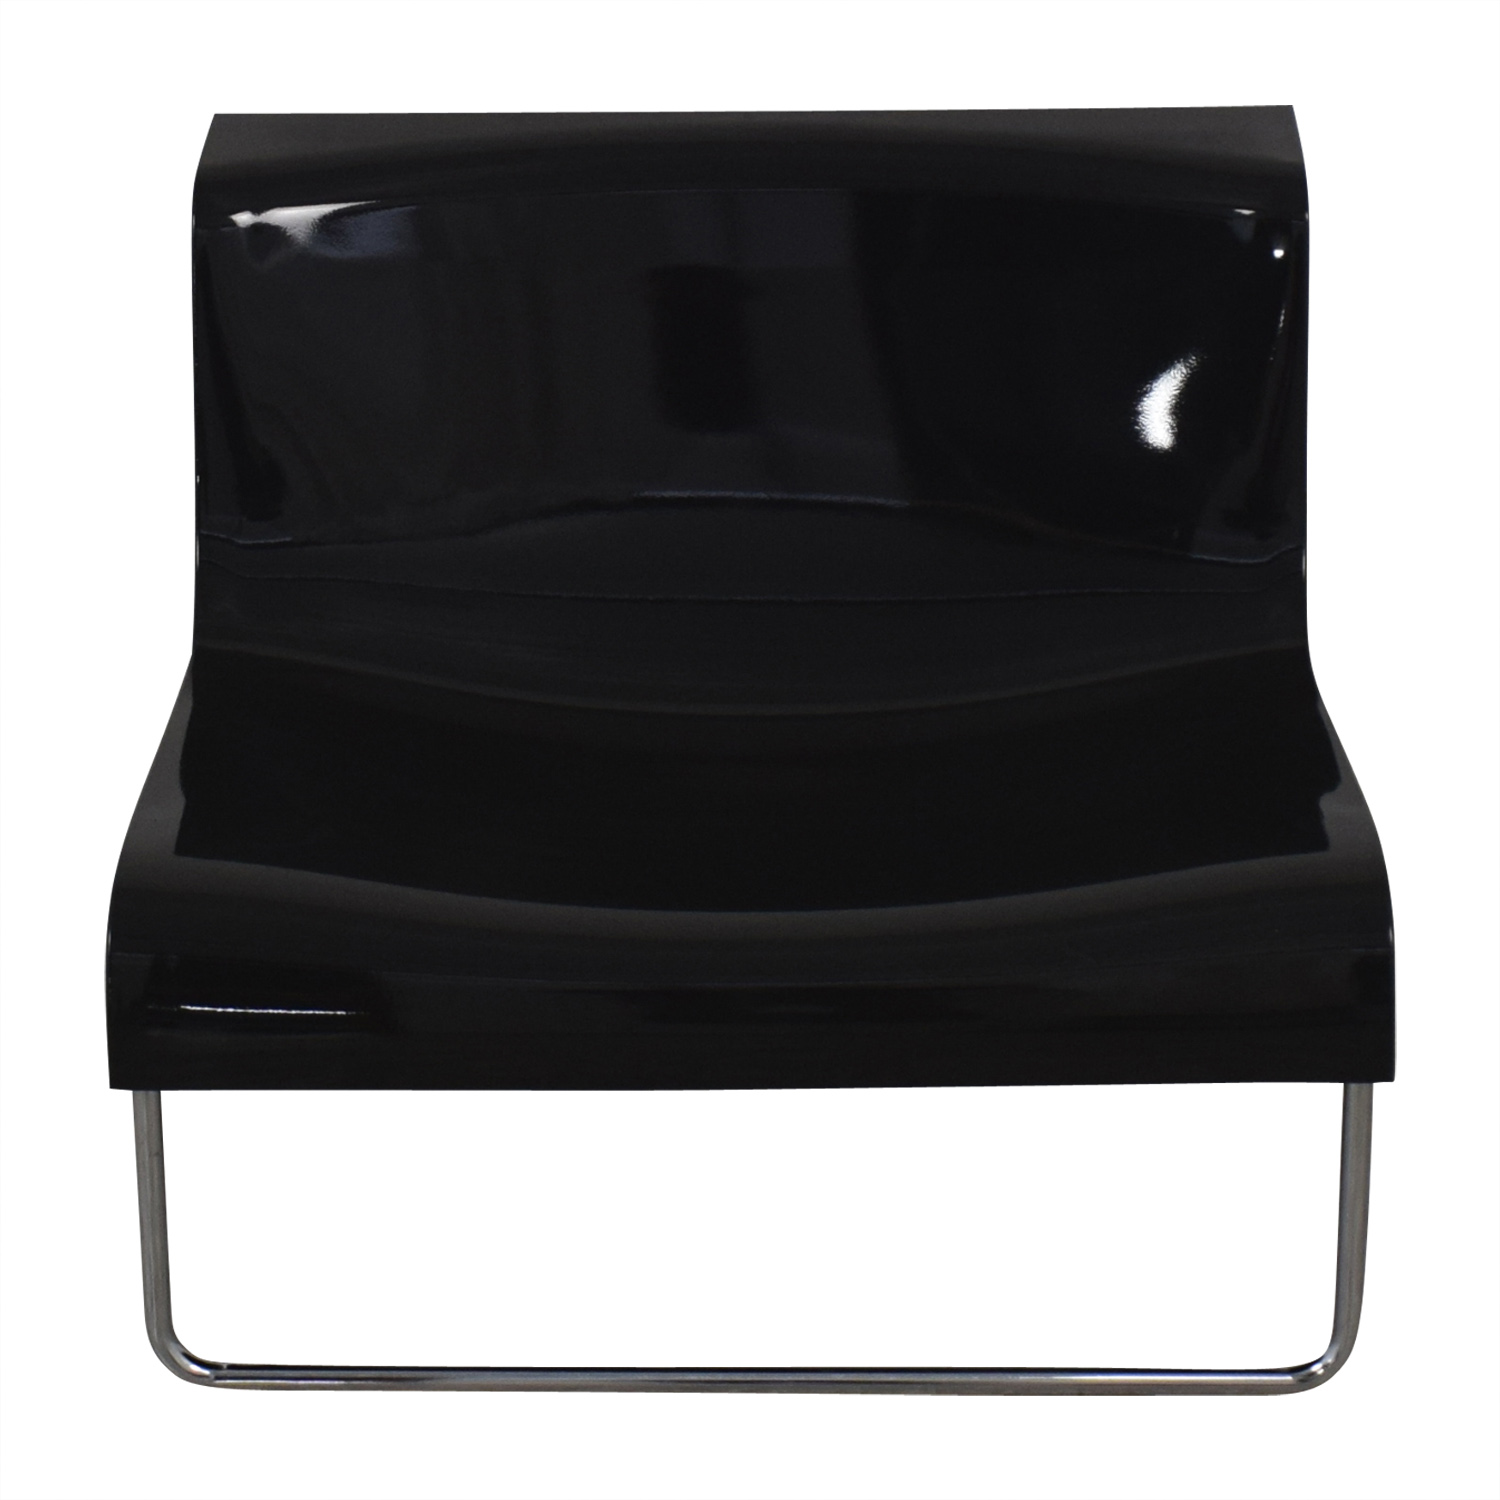 Kartell Kartell Form Chair by Piero Lissoni